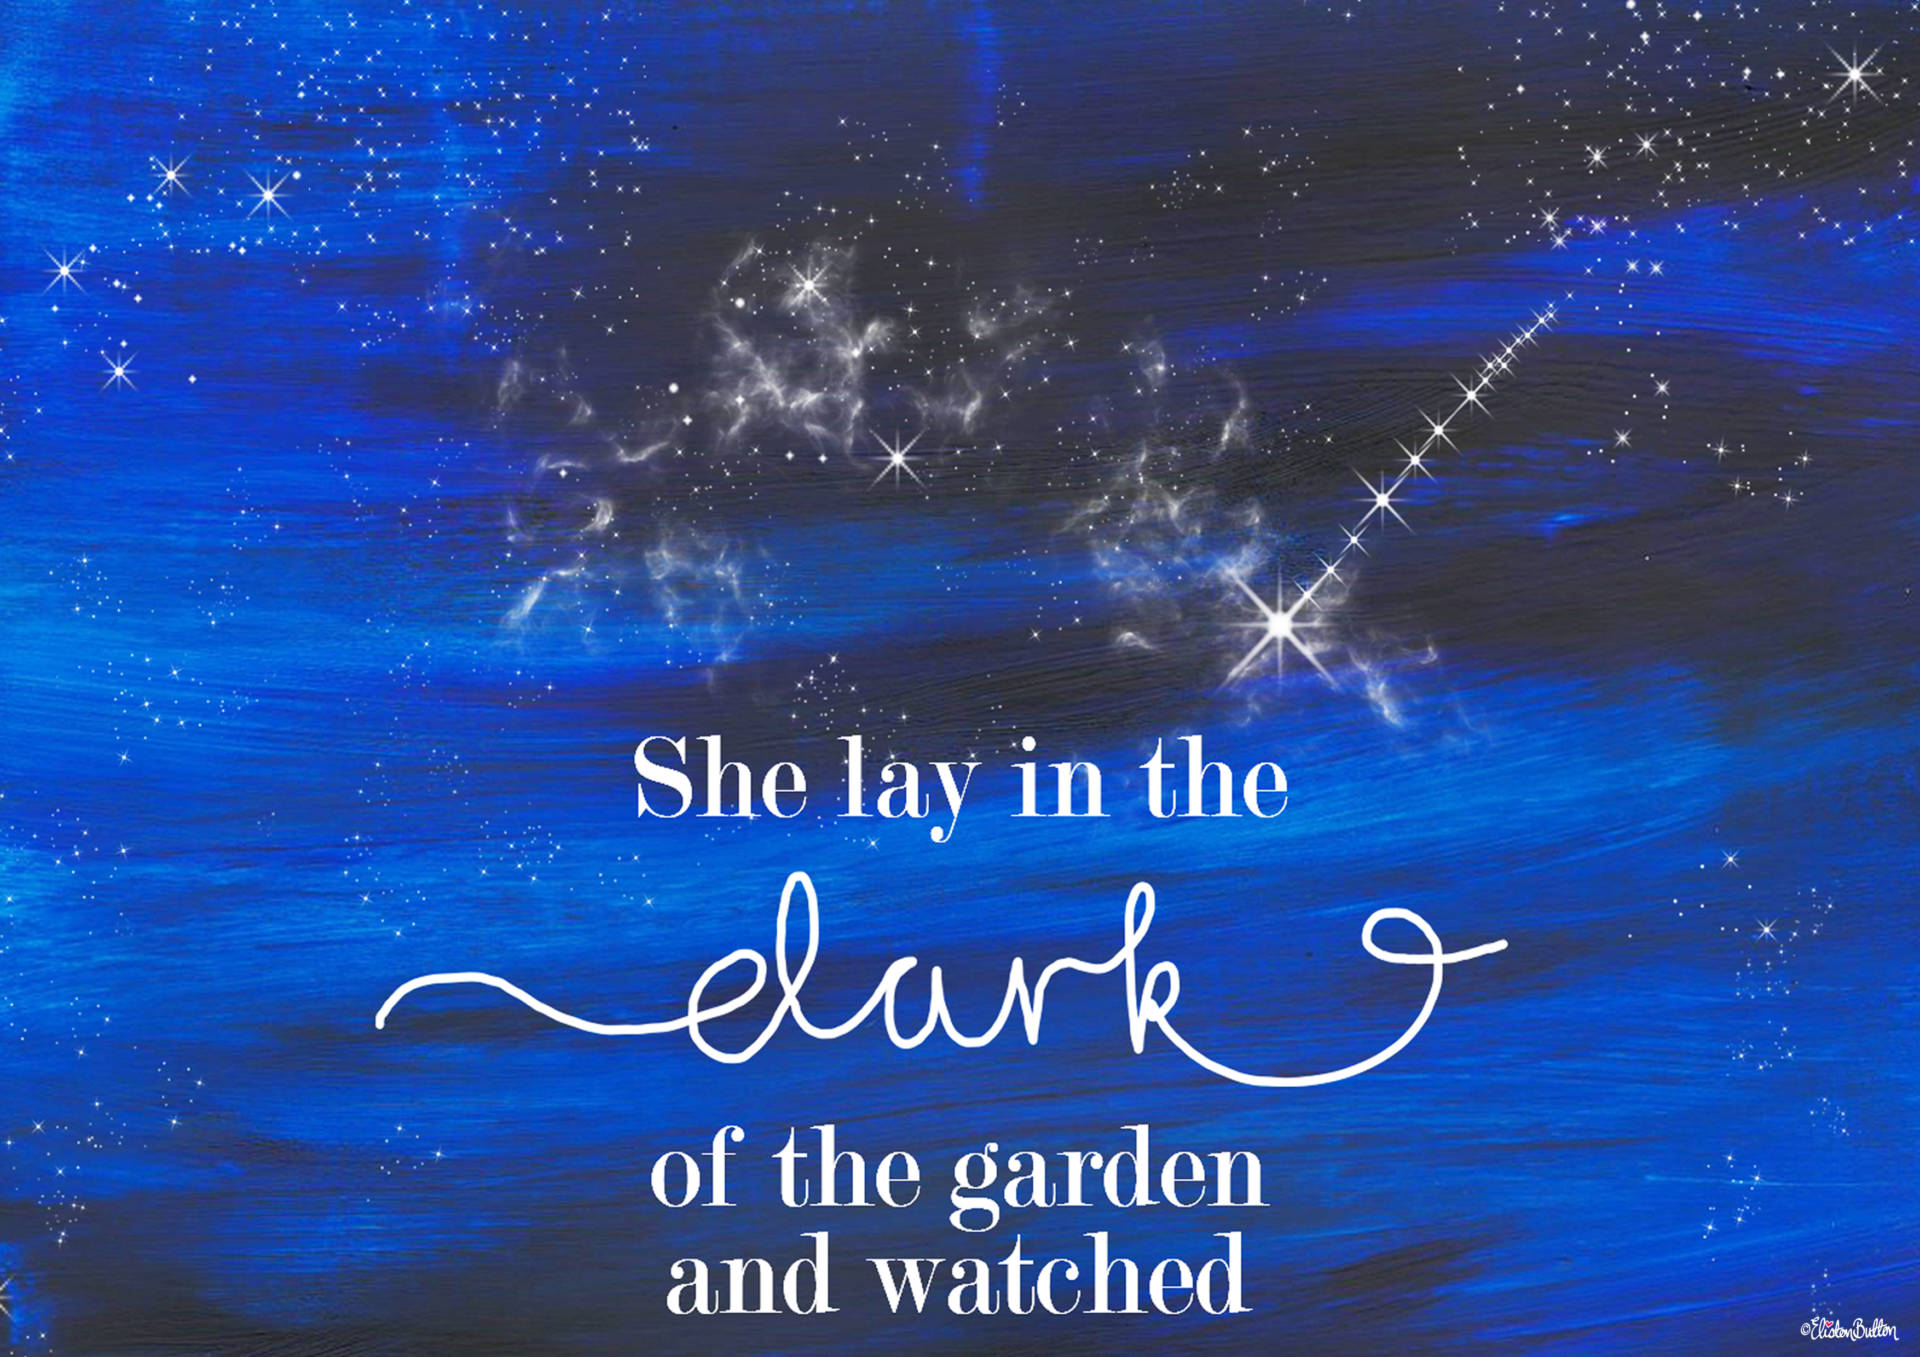 Shooting Star Quote Print with Painted Night Sky Background by Eliston Button - Top Section - Create 30 - No. 23 - Shooting Star Quote Print at www.elistonbutton.com - Eliston Button - That Crafty Kid – Art, Design, Craft & Adventure.